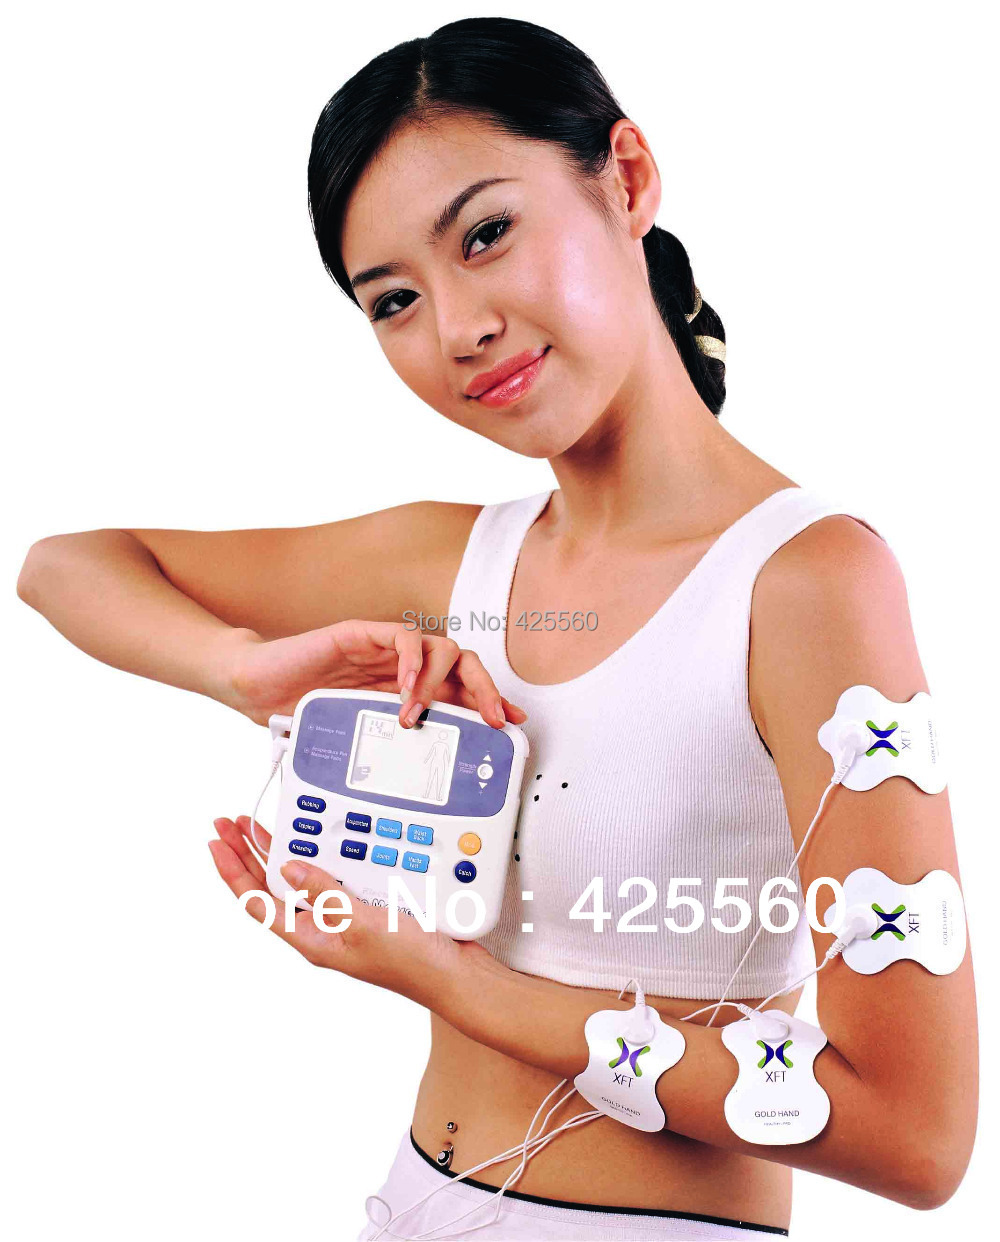 5 Pieces Electrical Stimulator 2 Channels XFT-320 Machine Digital Massage With Accupuncture Pen & 4 pcs Electrodes Pads(China (Mainland))